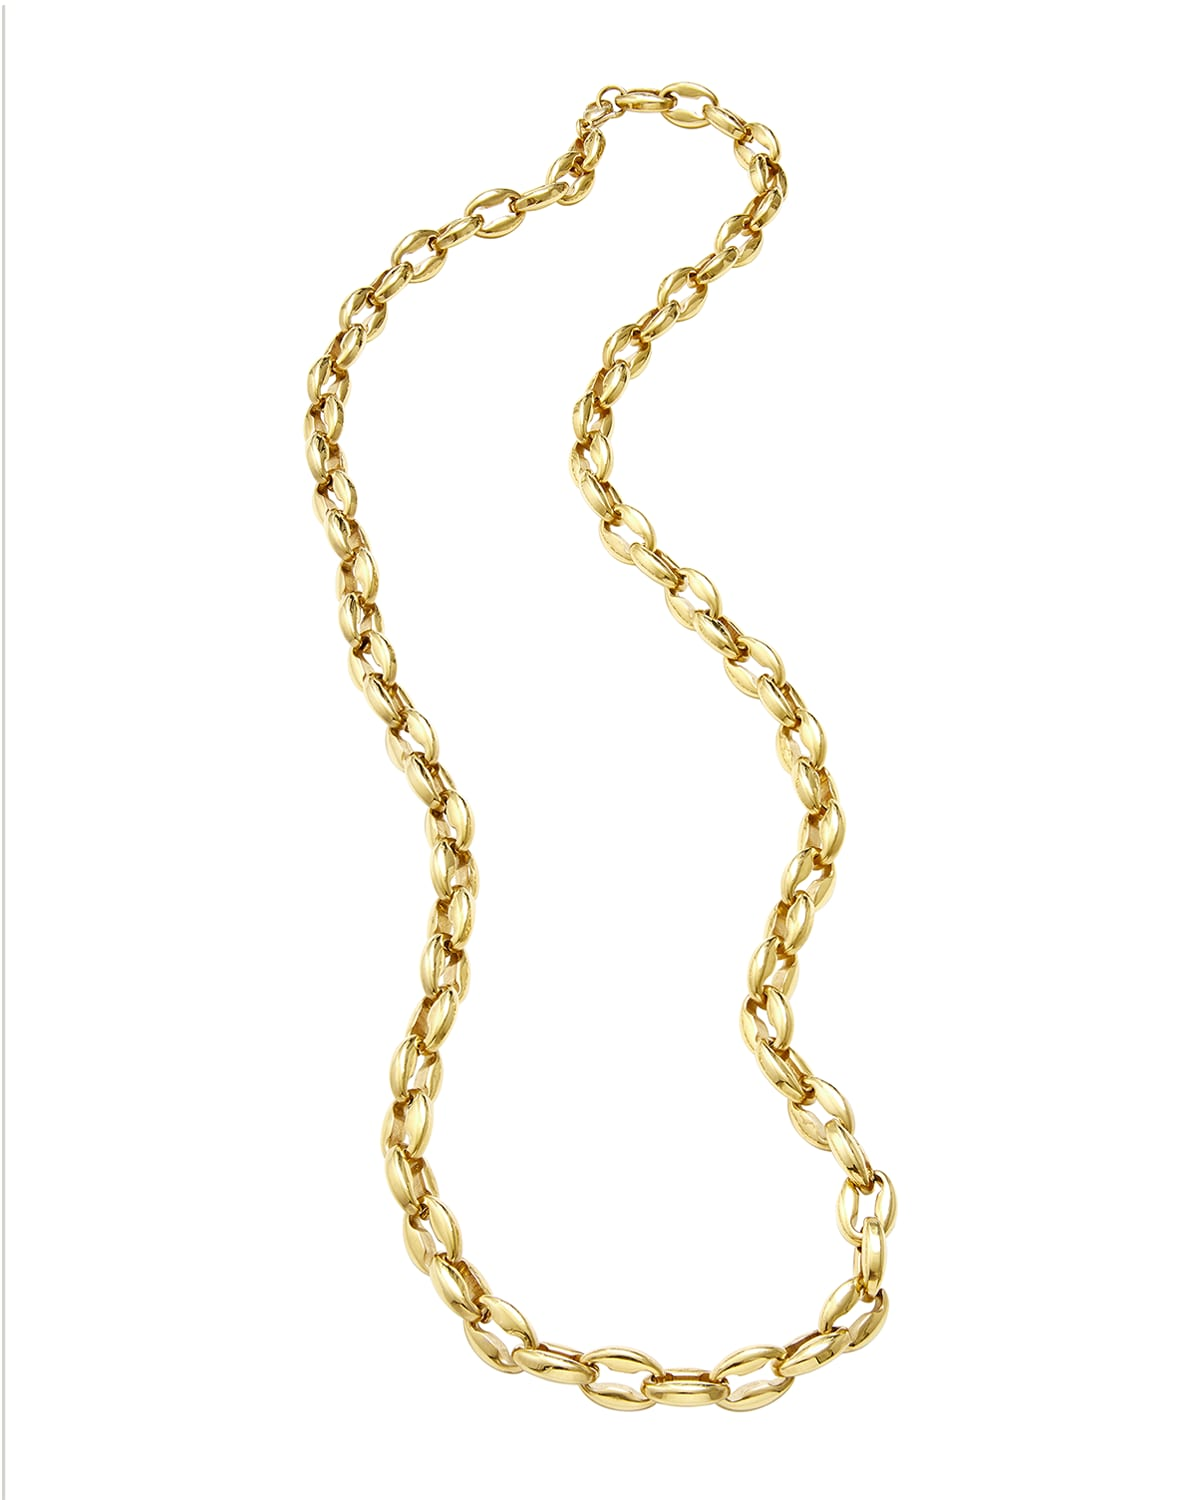 Toscano Chain Necklace